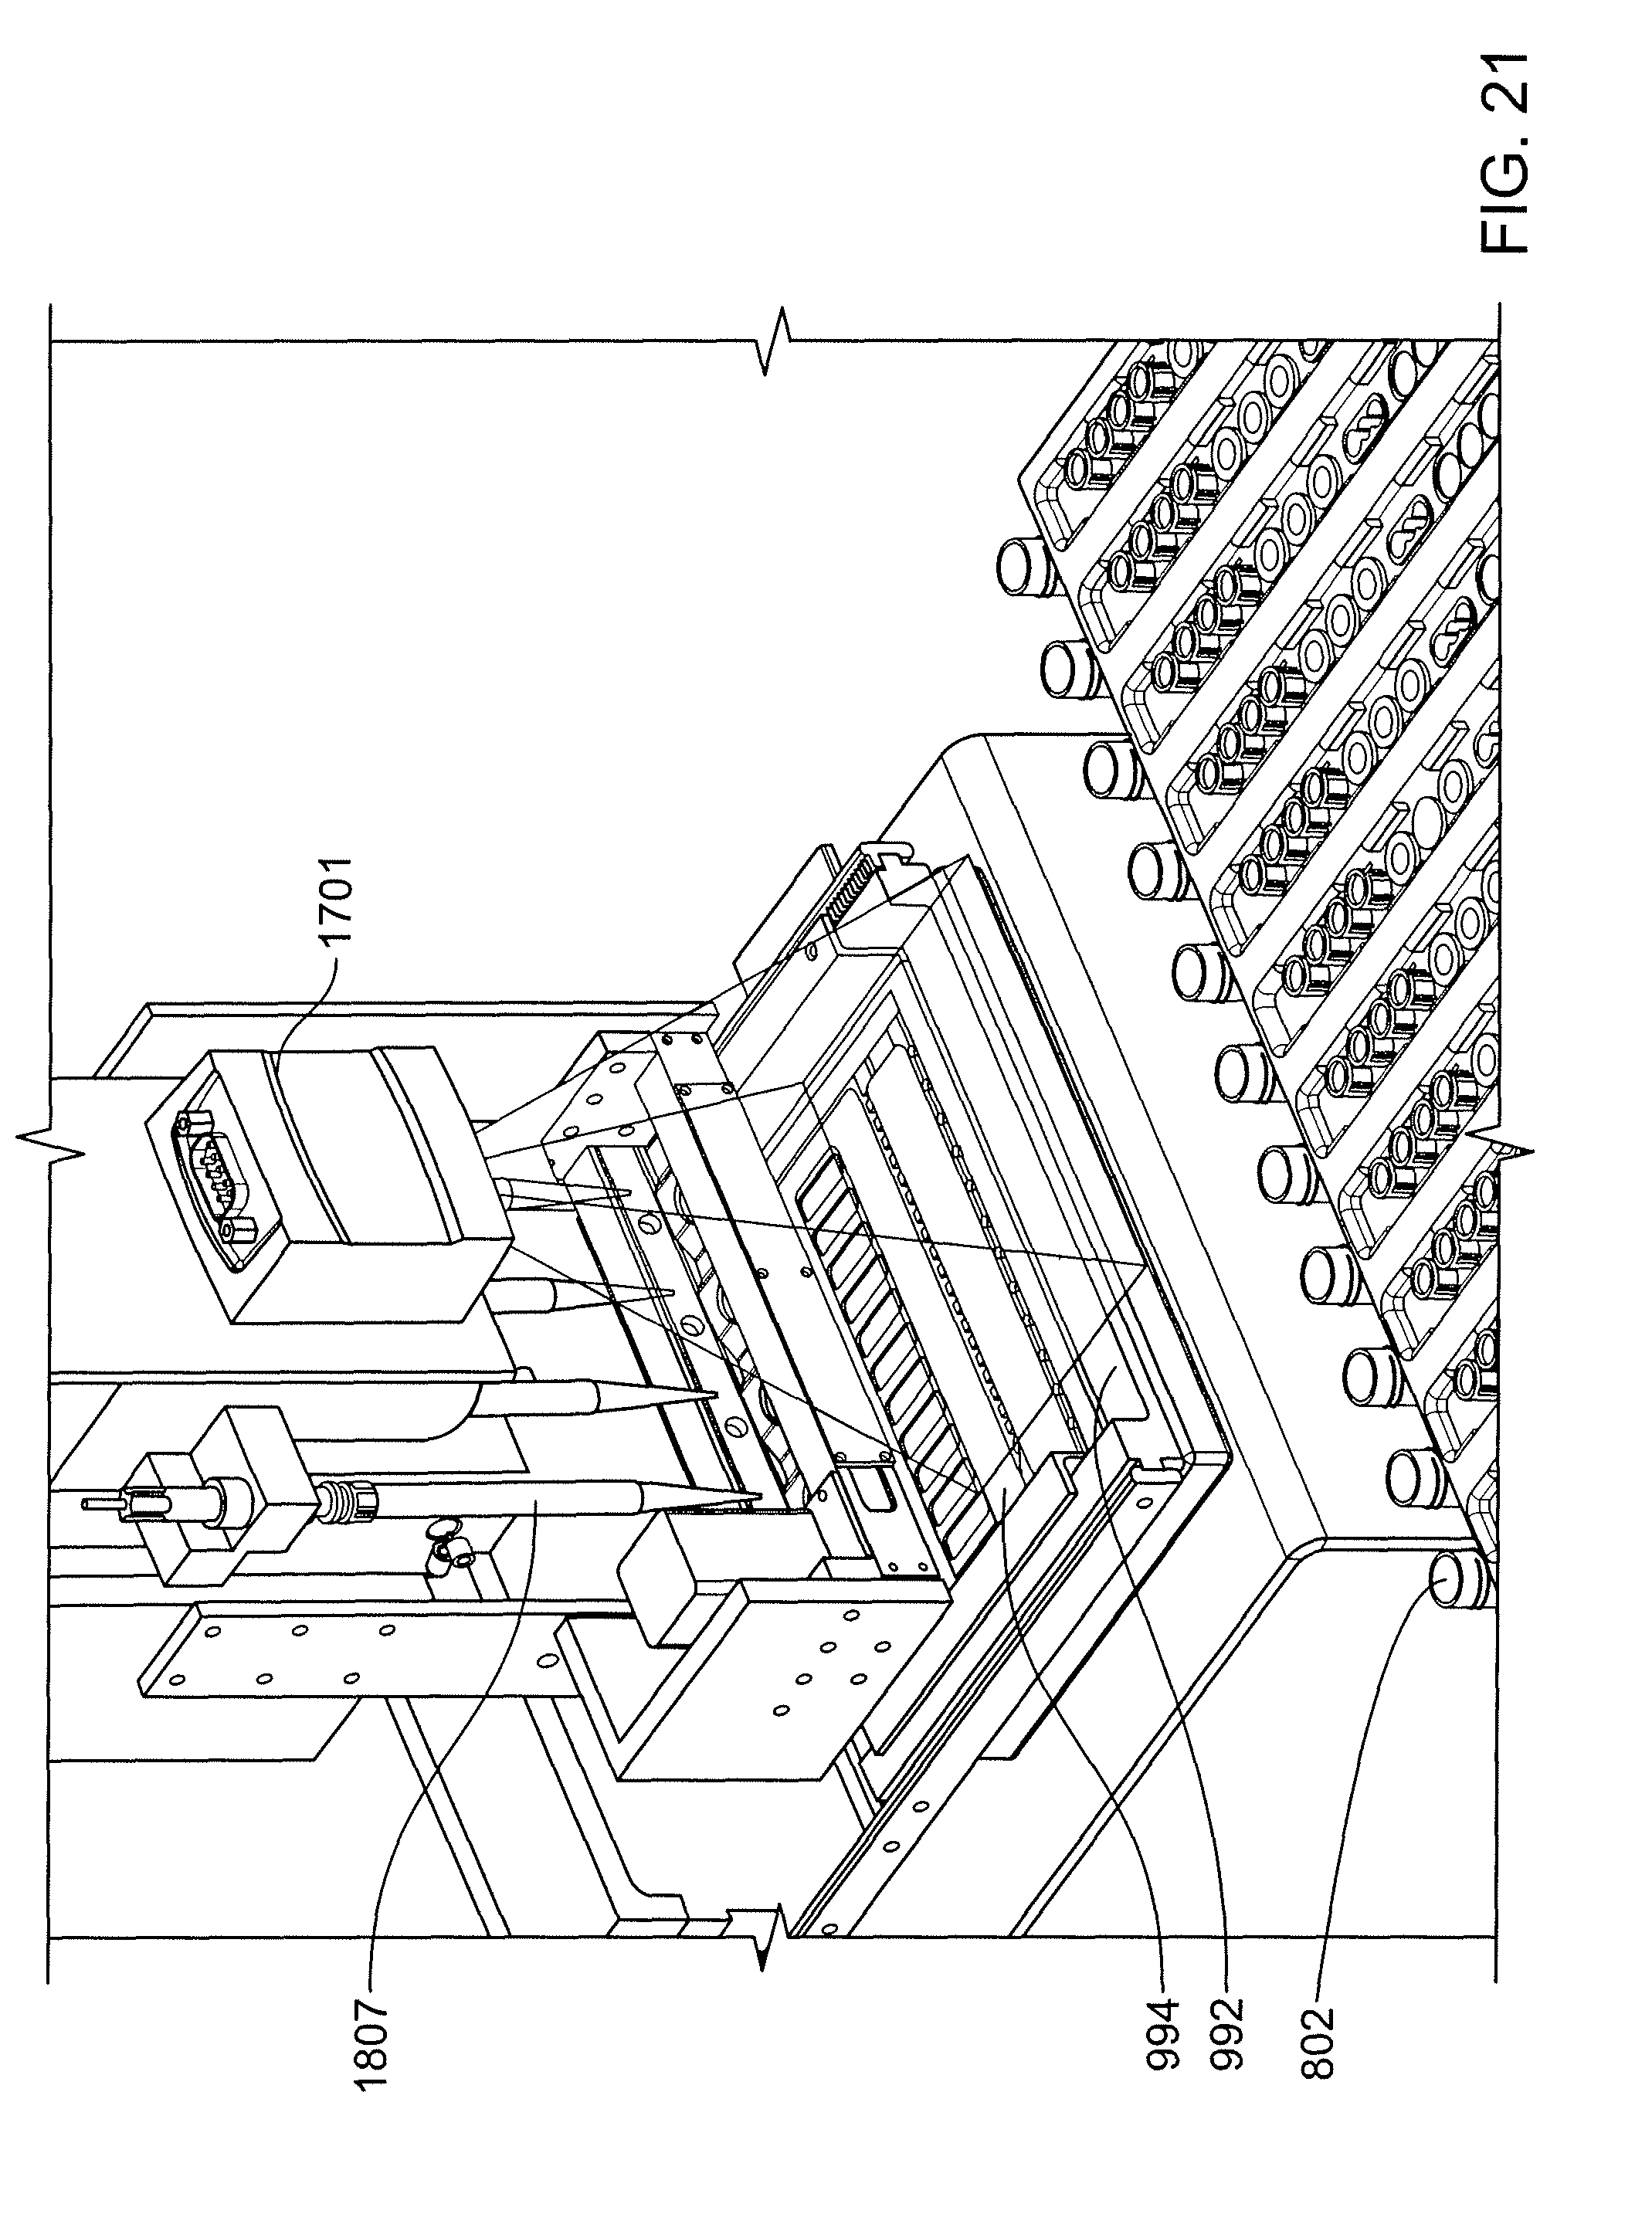 Us8287820b2 automated pipetting apparatus having a bined liquid pump and pipette head system patents